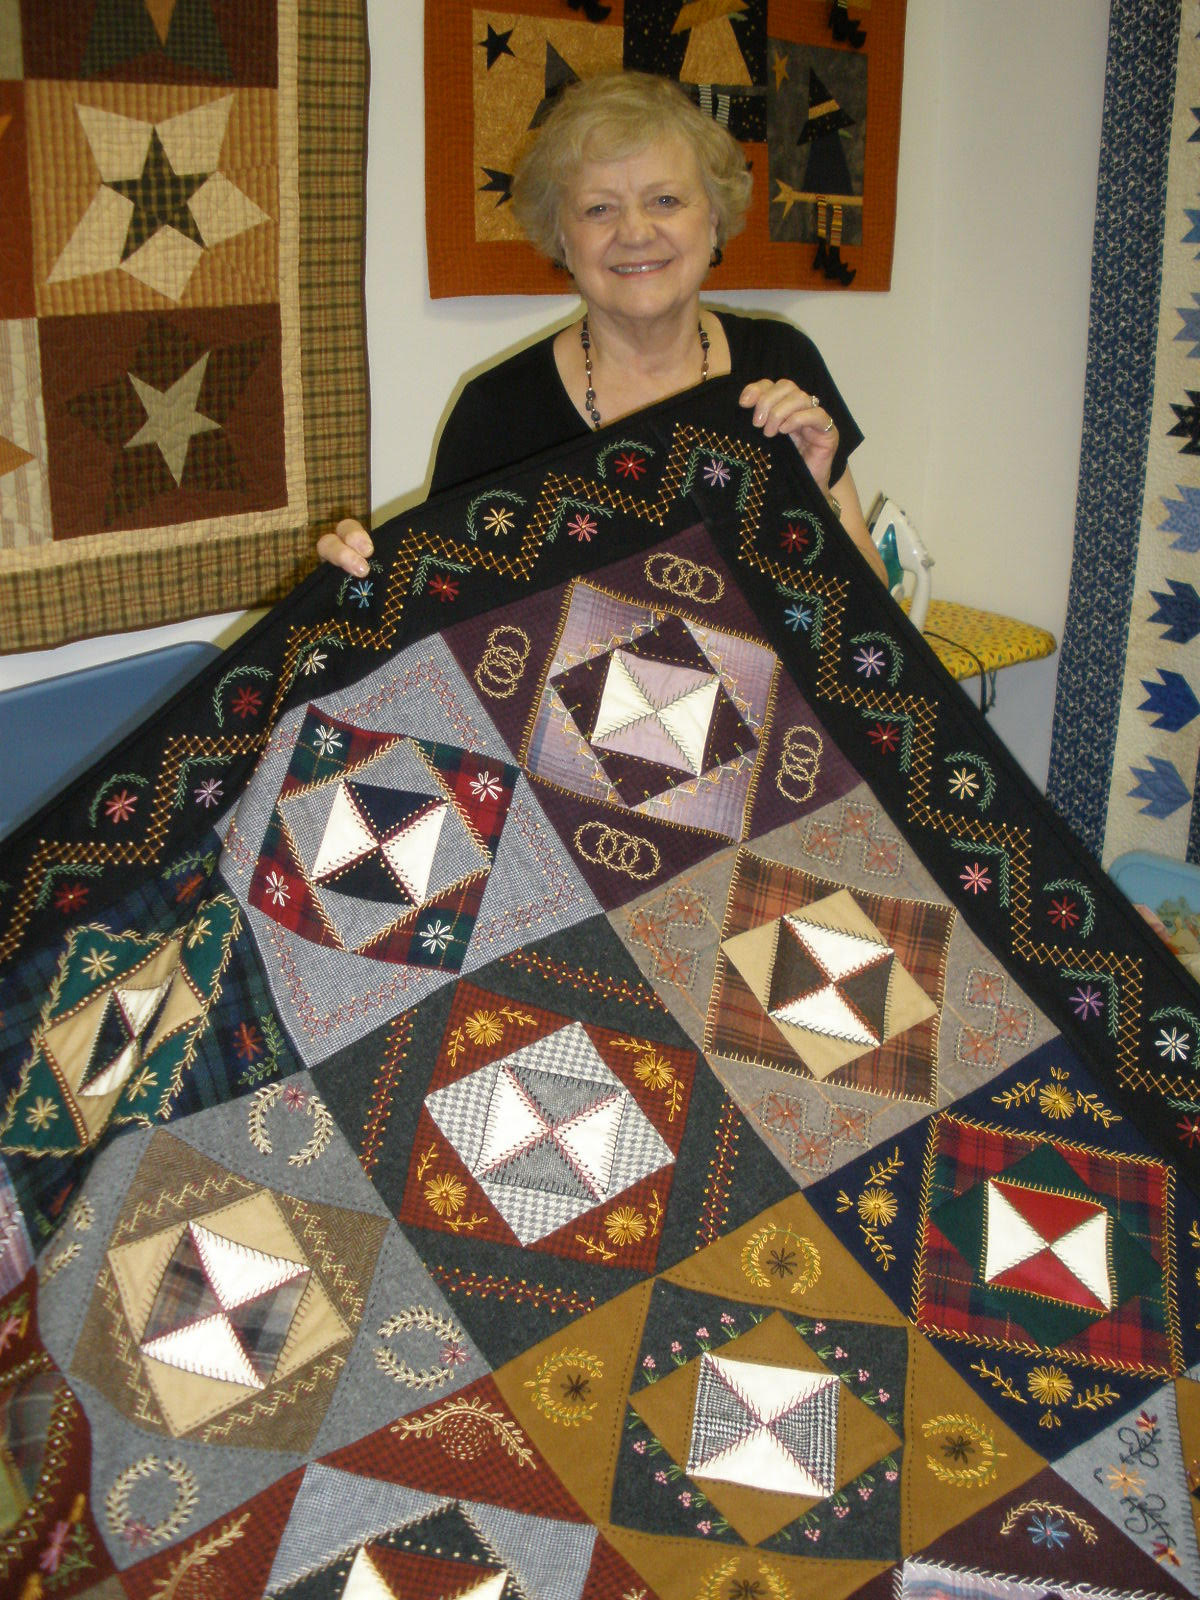 2018 Quilter of the Year Mary Chalmers